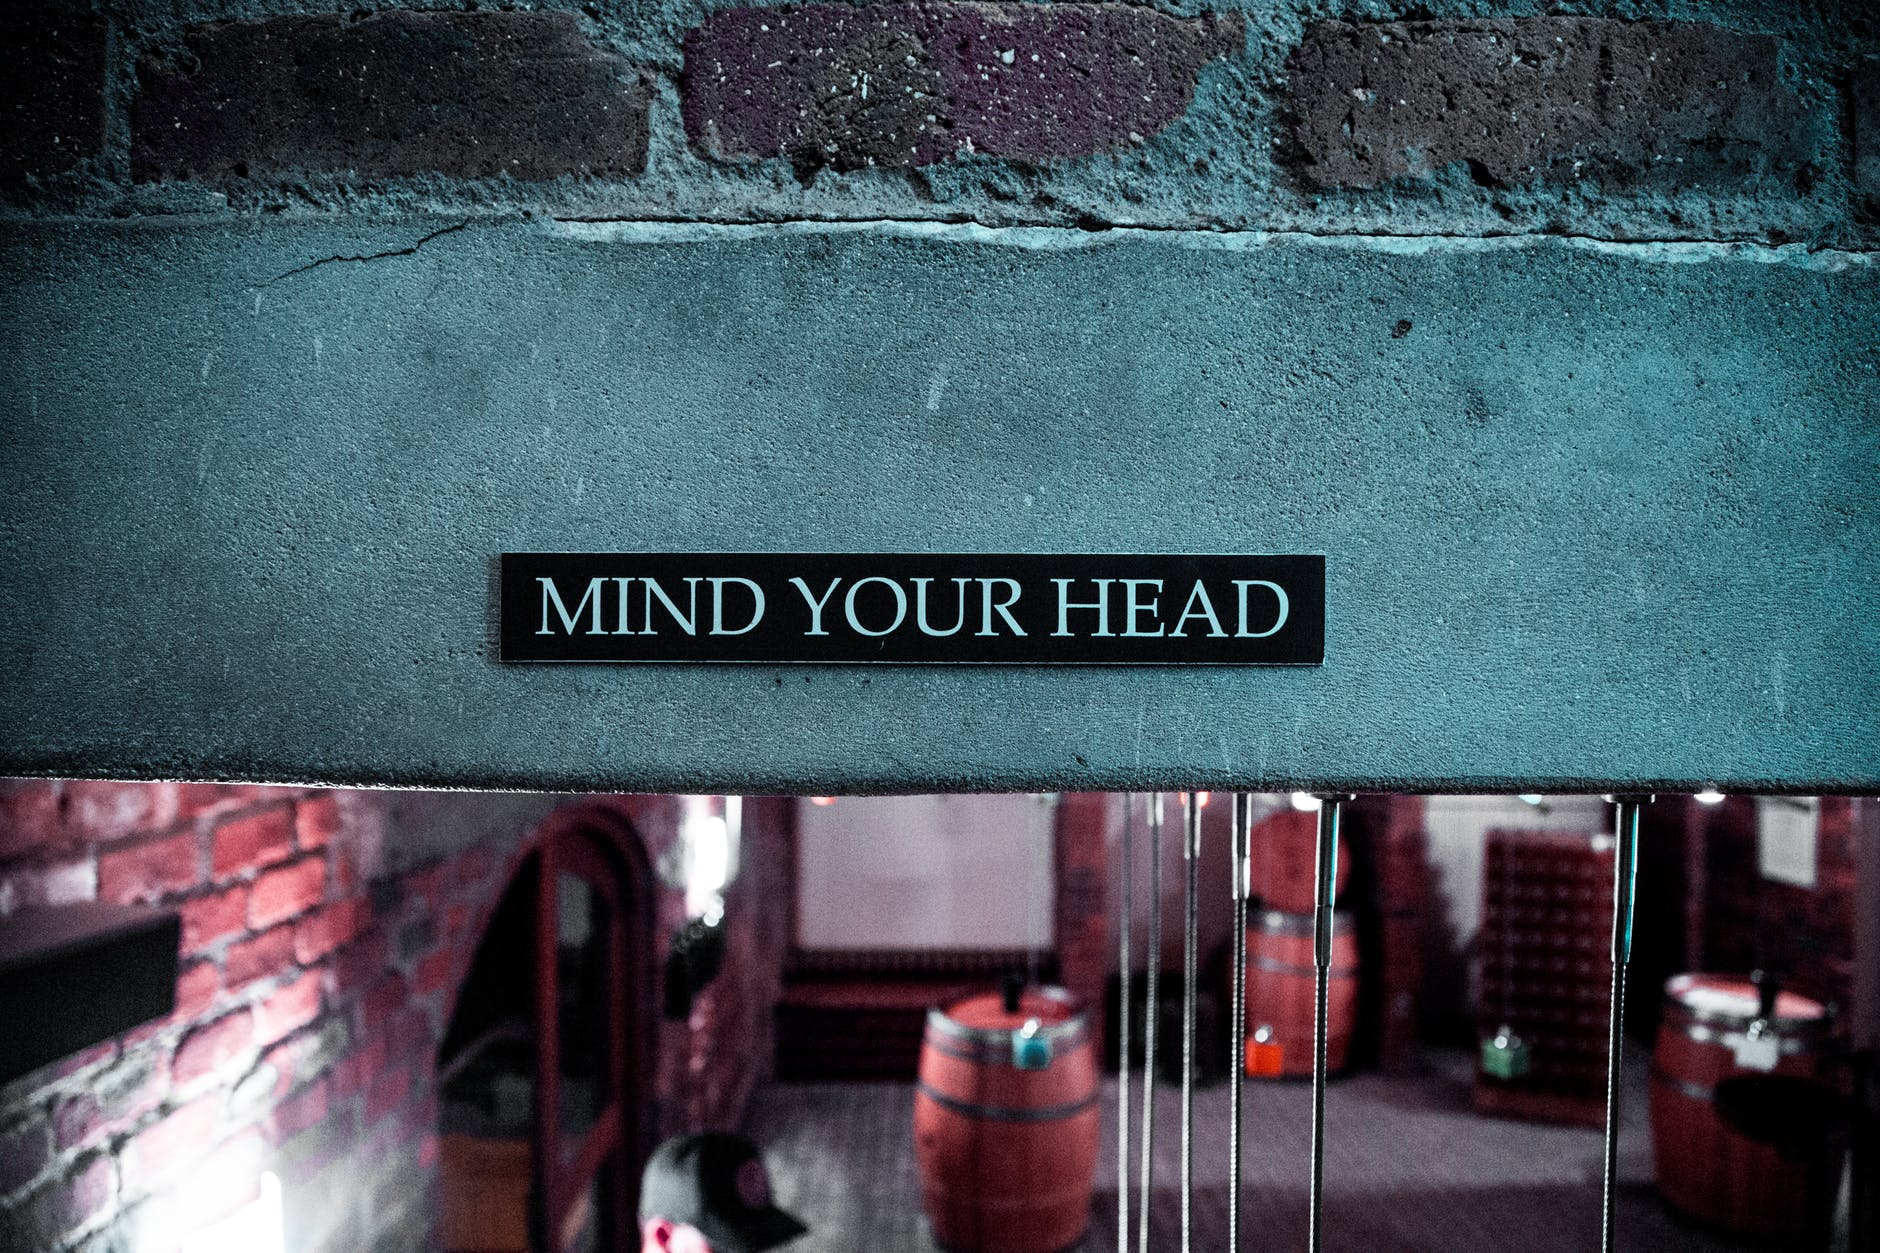 mind your head signage